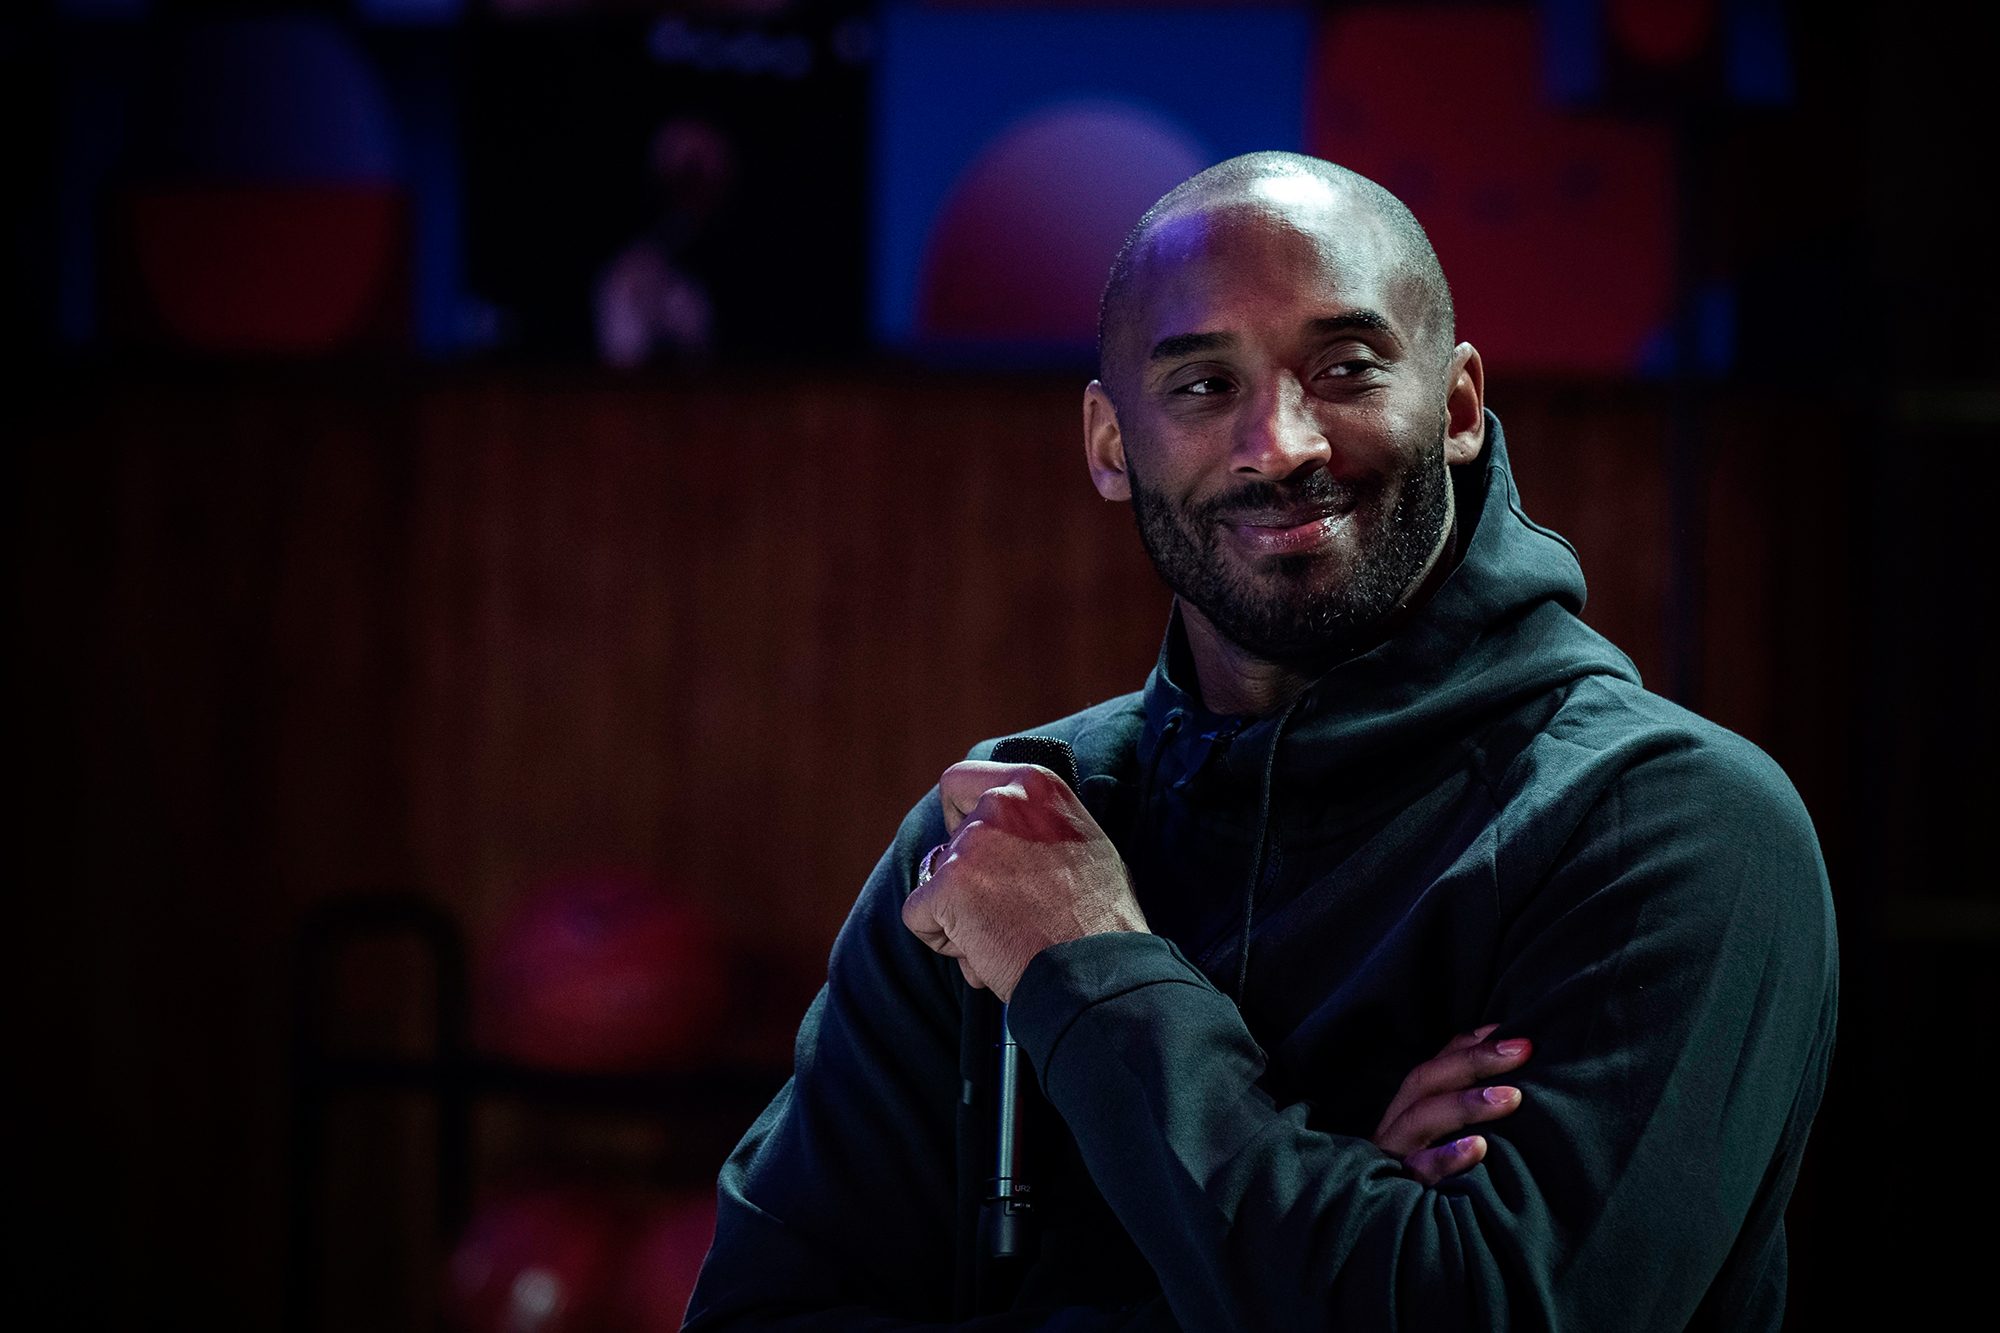 Kobe Bryant stopped by his church hours before his death. His priest says he was 'certainly a man of faith'